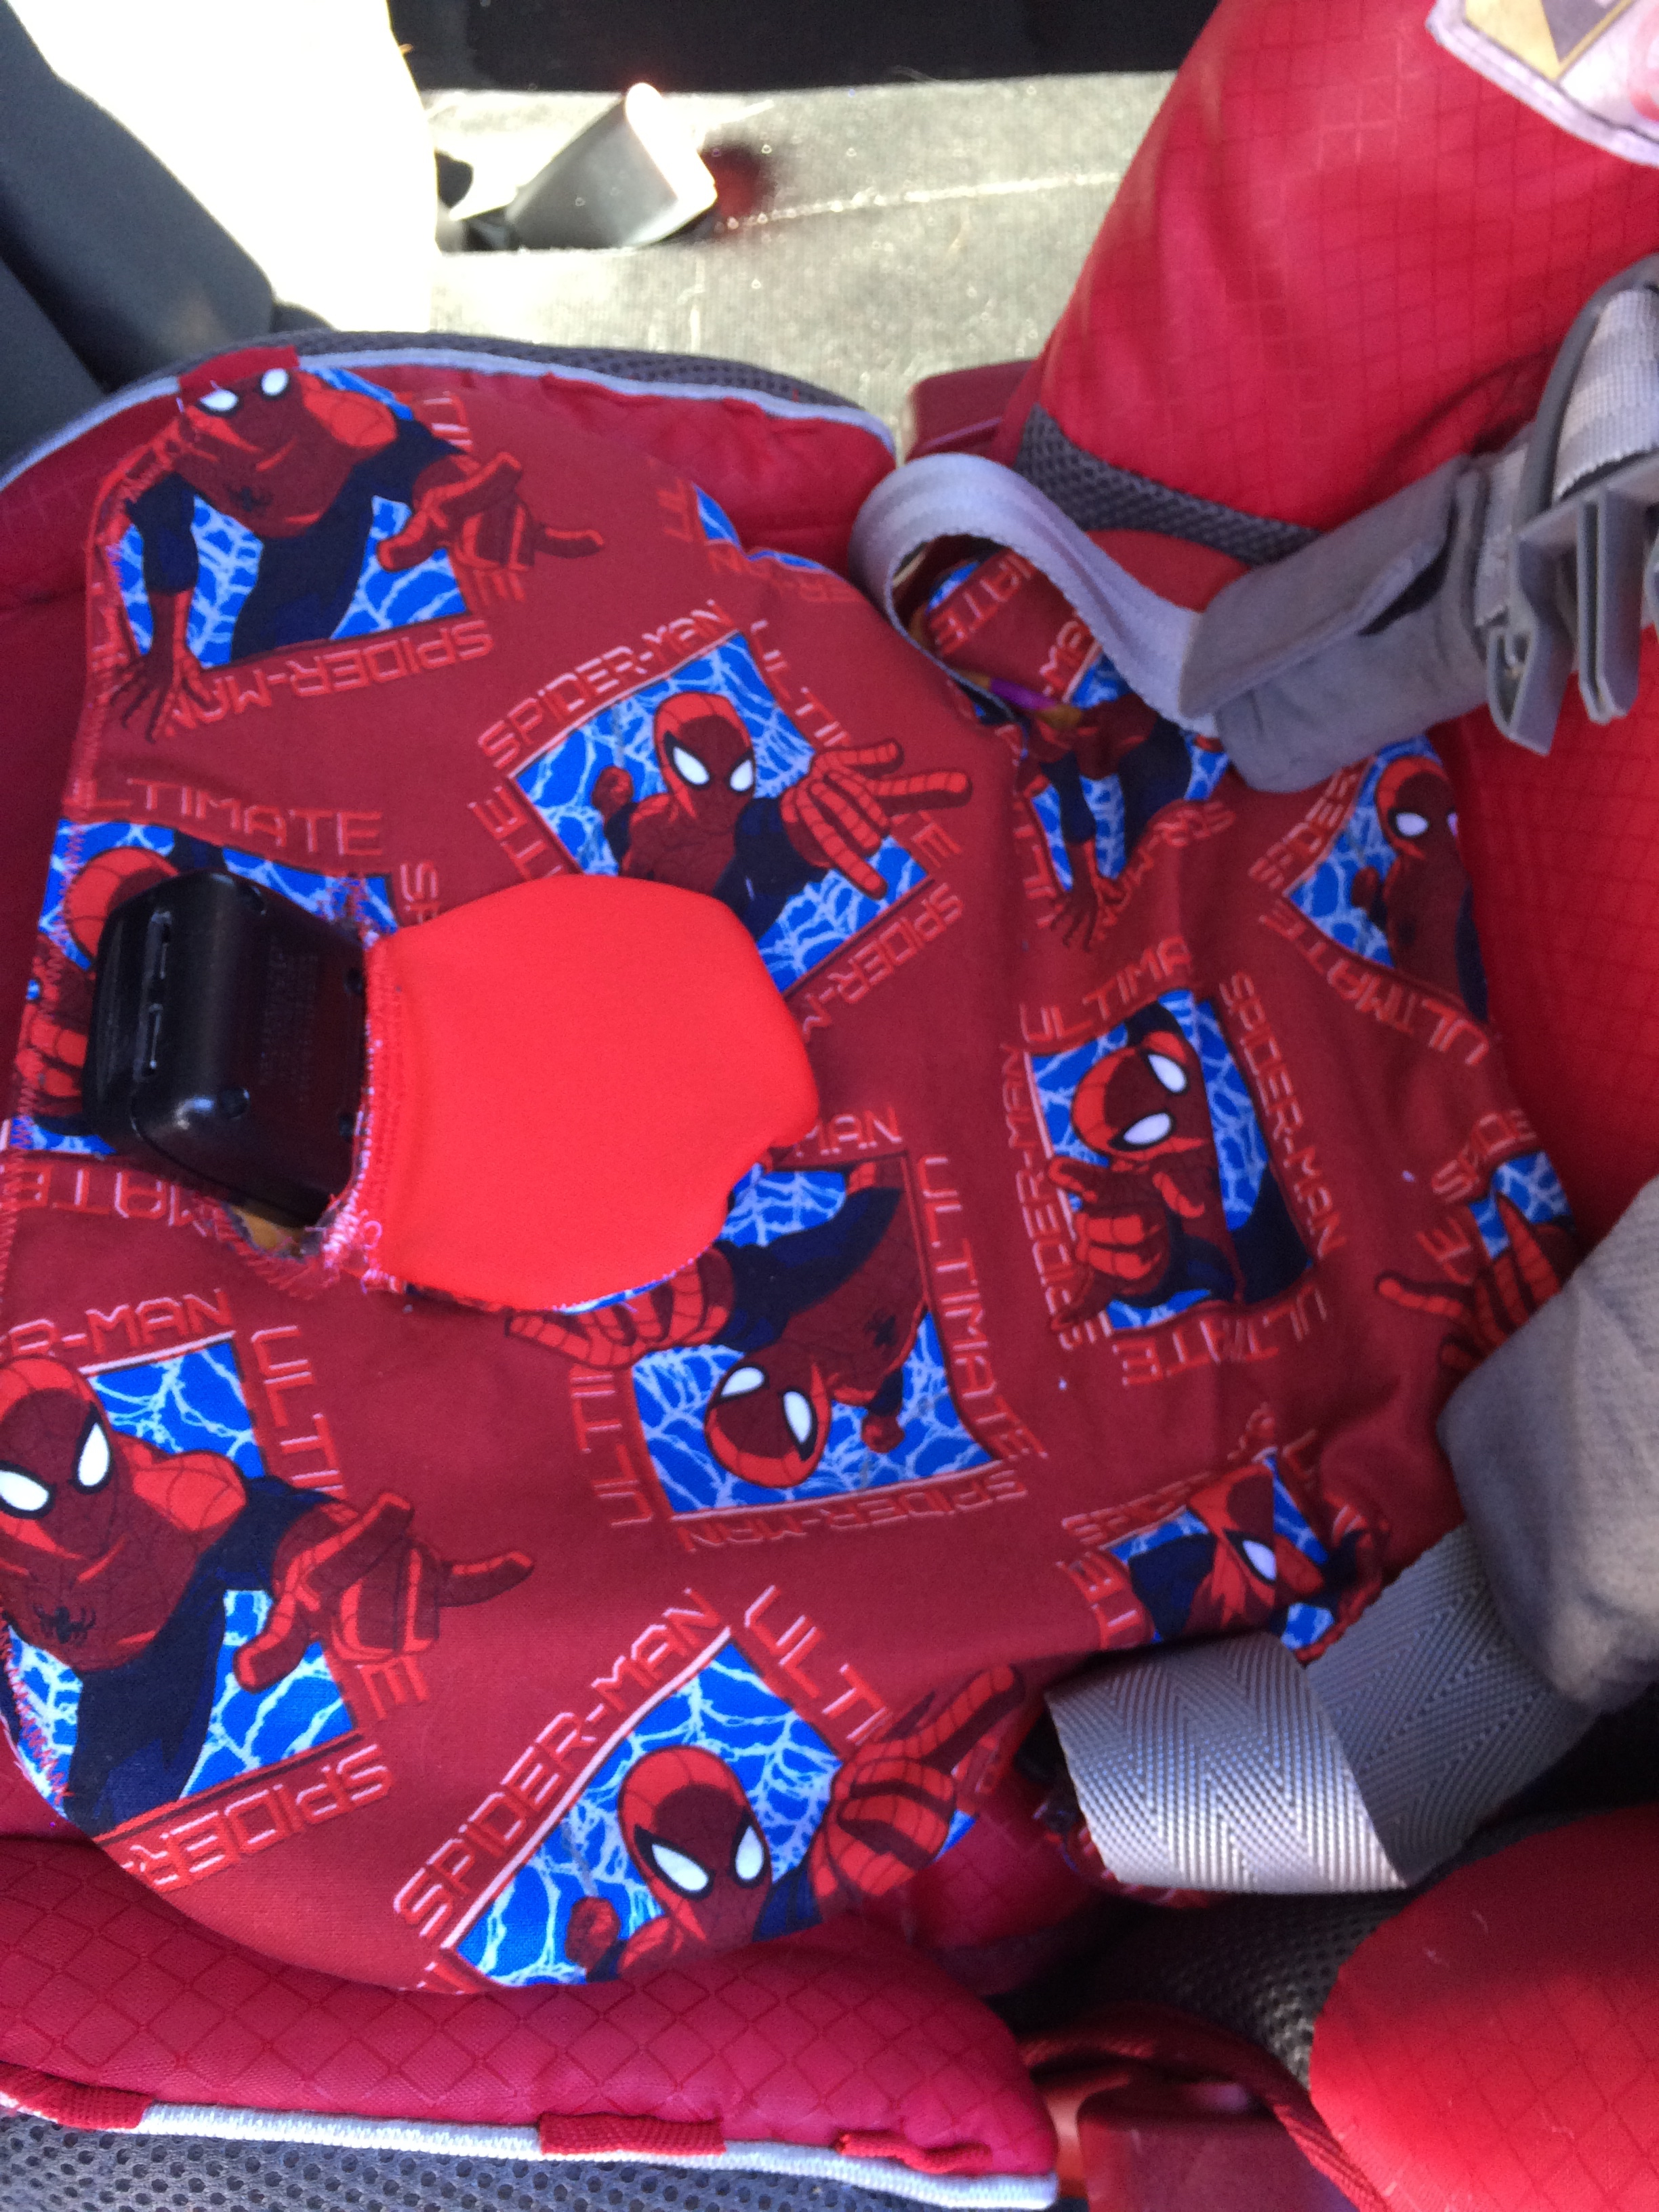 DIY pee pad for car seat